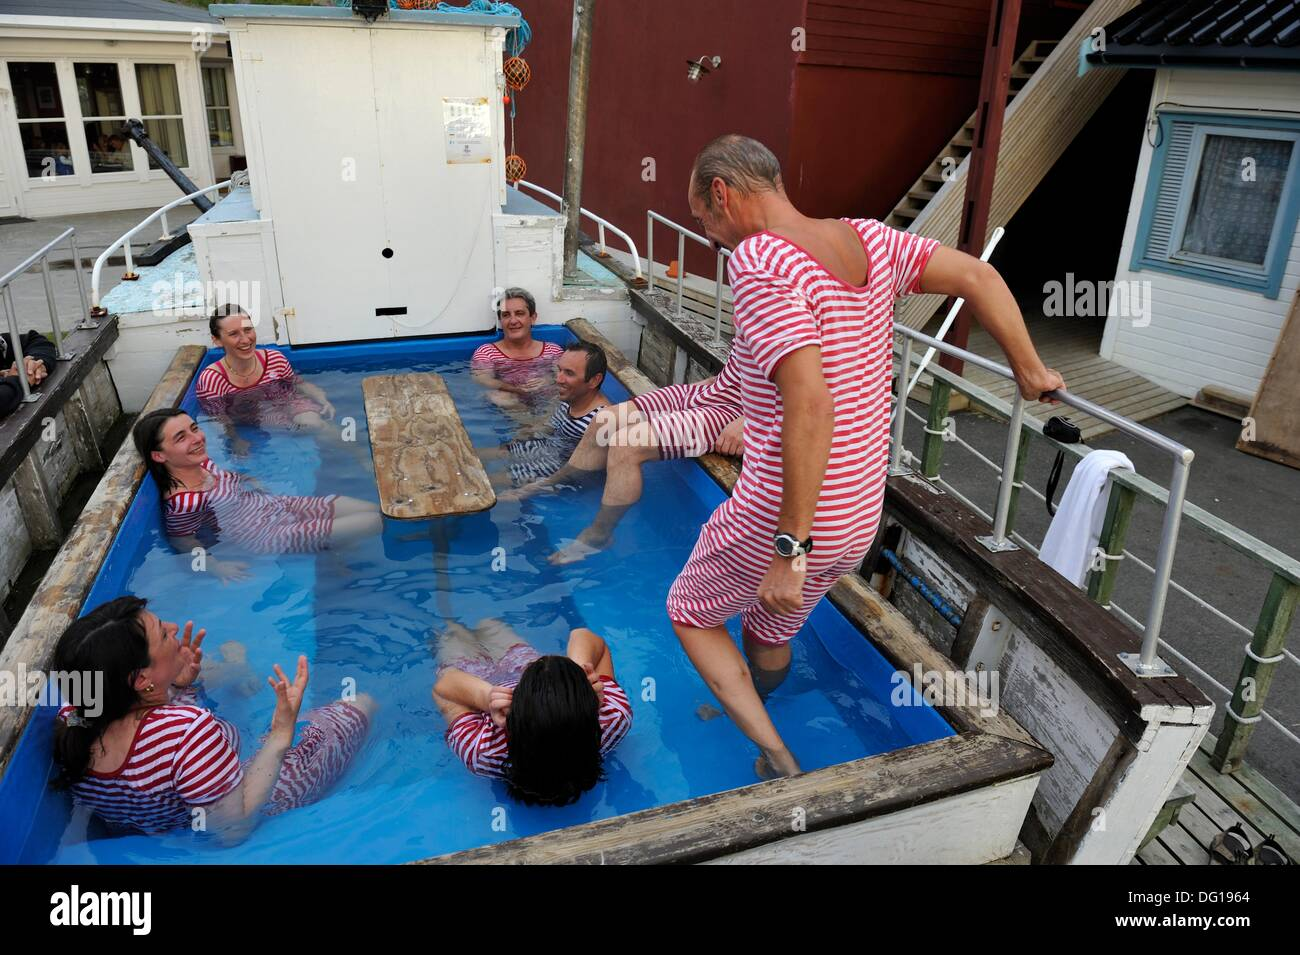 Group In A Hot Tub Stock Photos & Group In A Hot Tub Stock Images ...